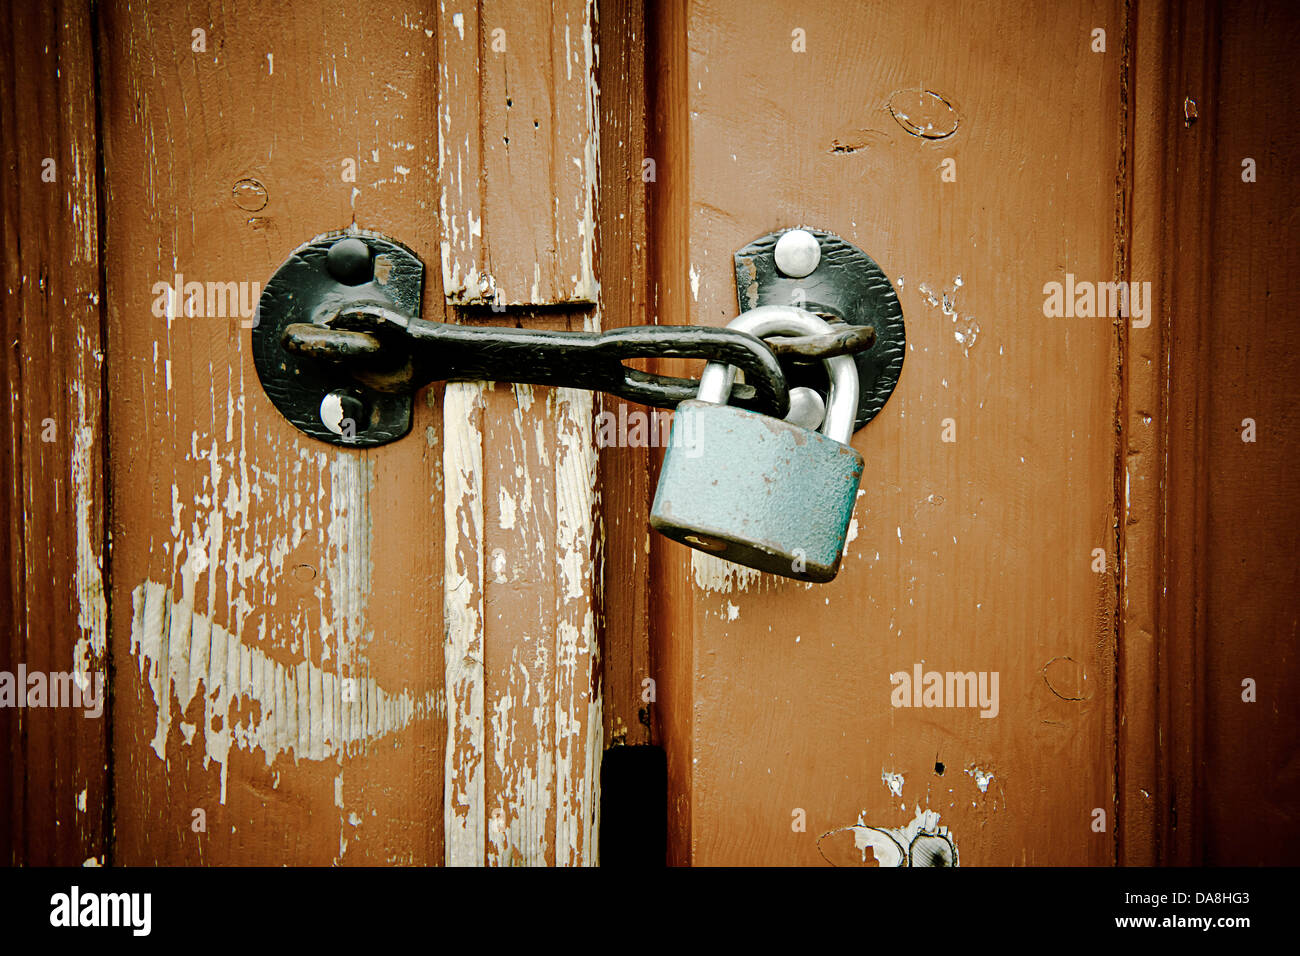 door with lock - Stock Image